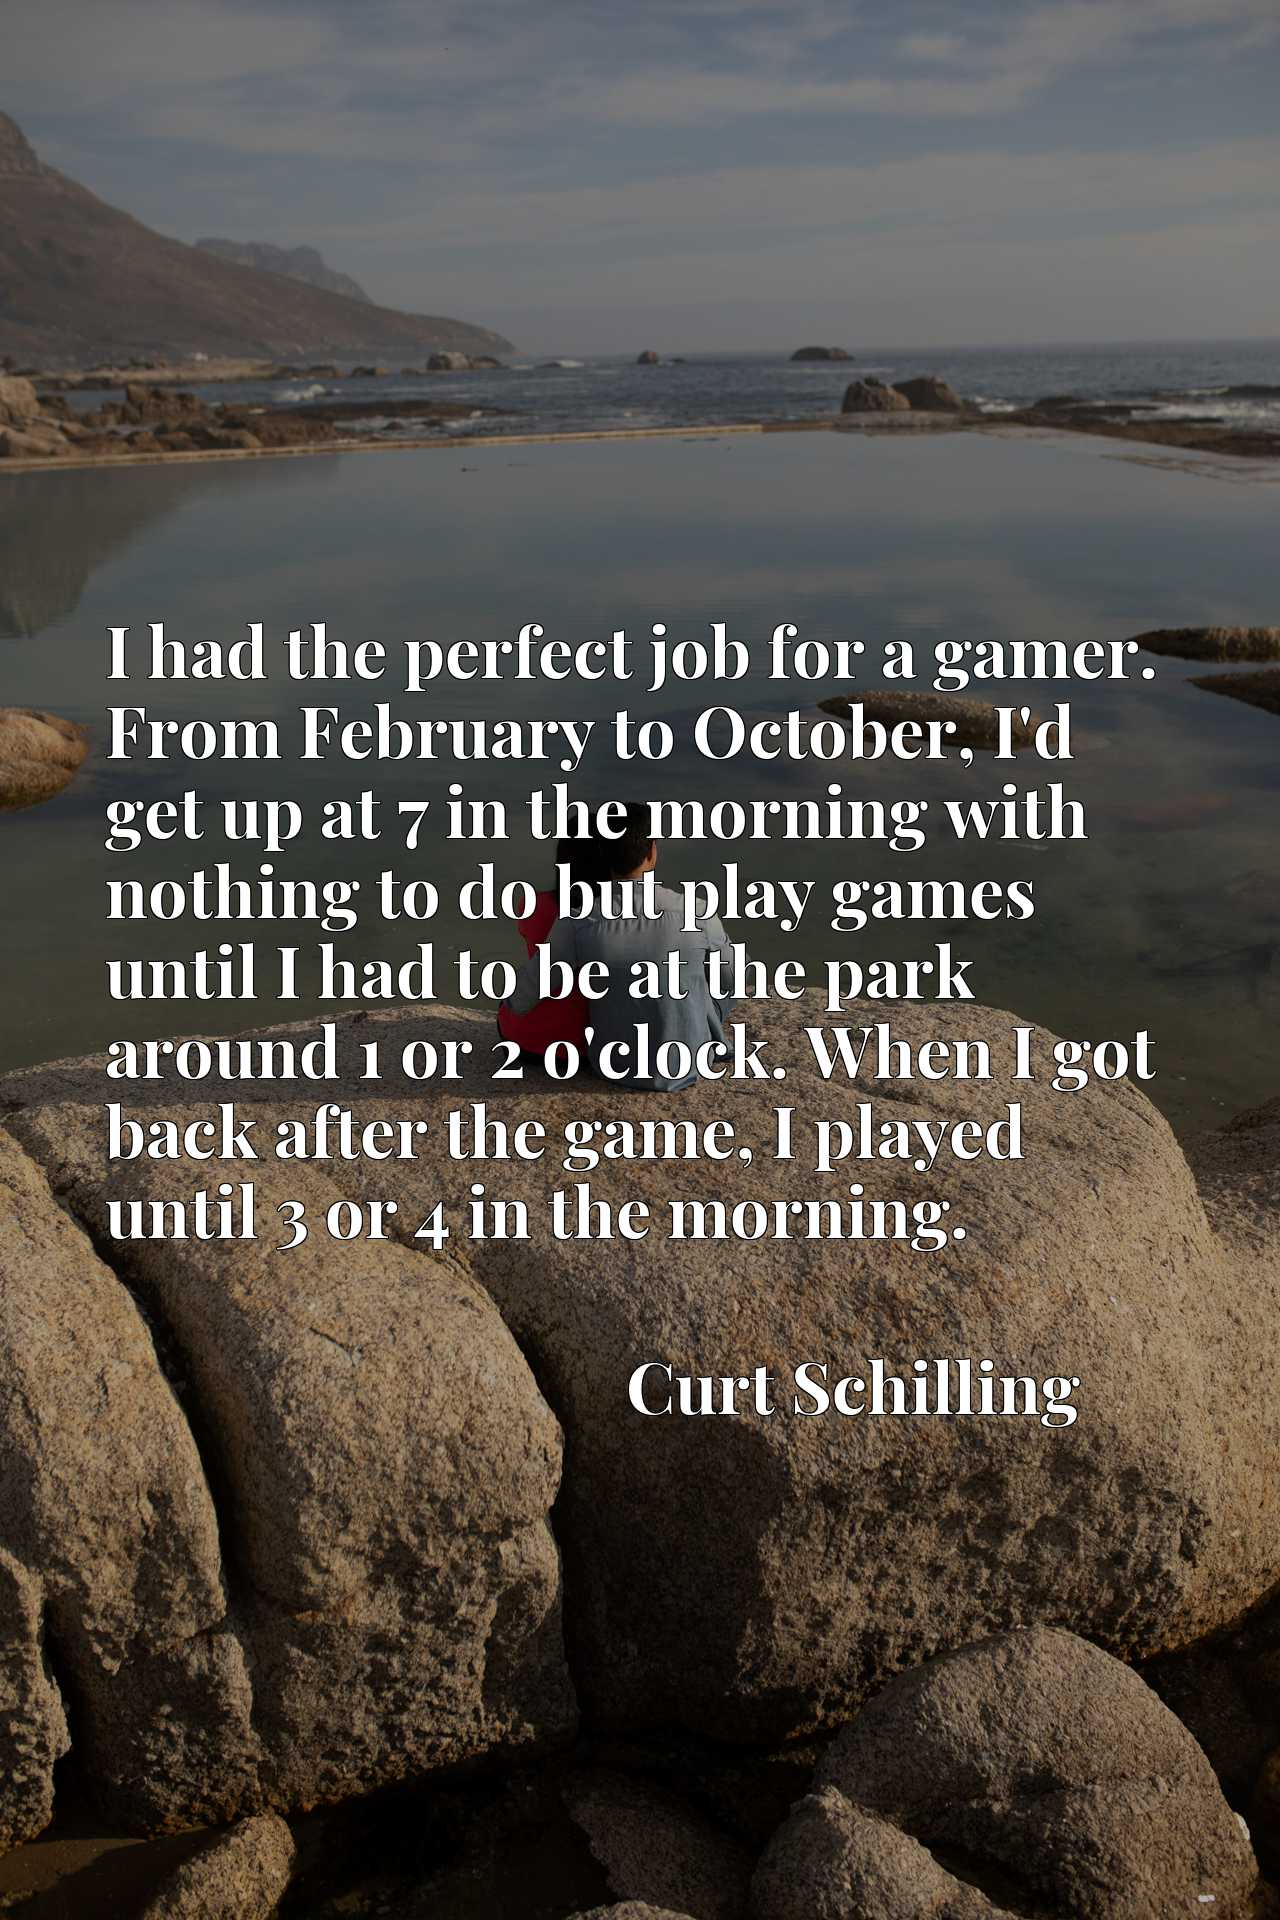 I had the perfect job for a gamer. From February to October, I'd get up at 7 in the morning with nothing to do but play games until I had to be at the park around 1 or 2 o'clock. When I got back after the game, I played until 3 or 4 in the morning.